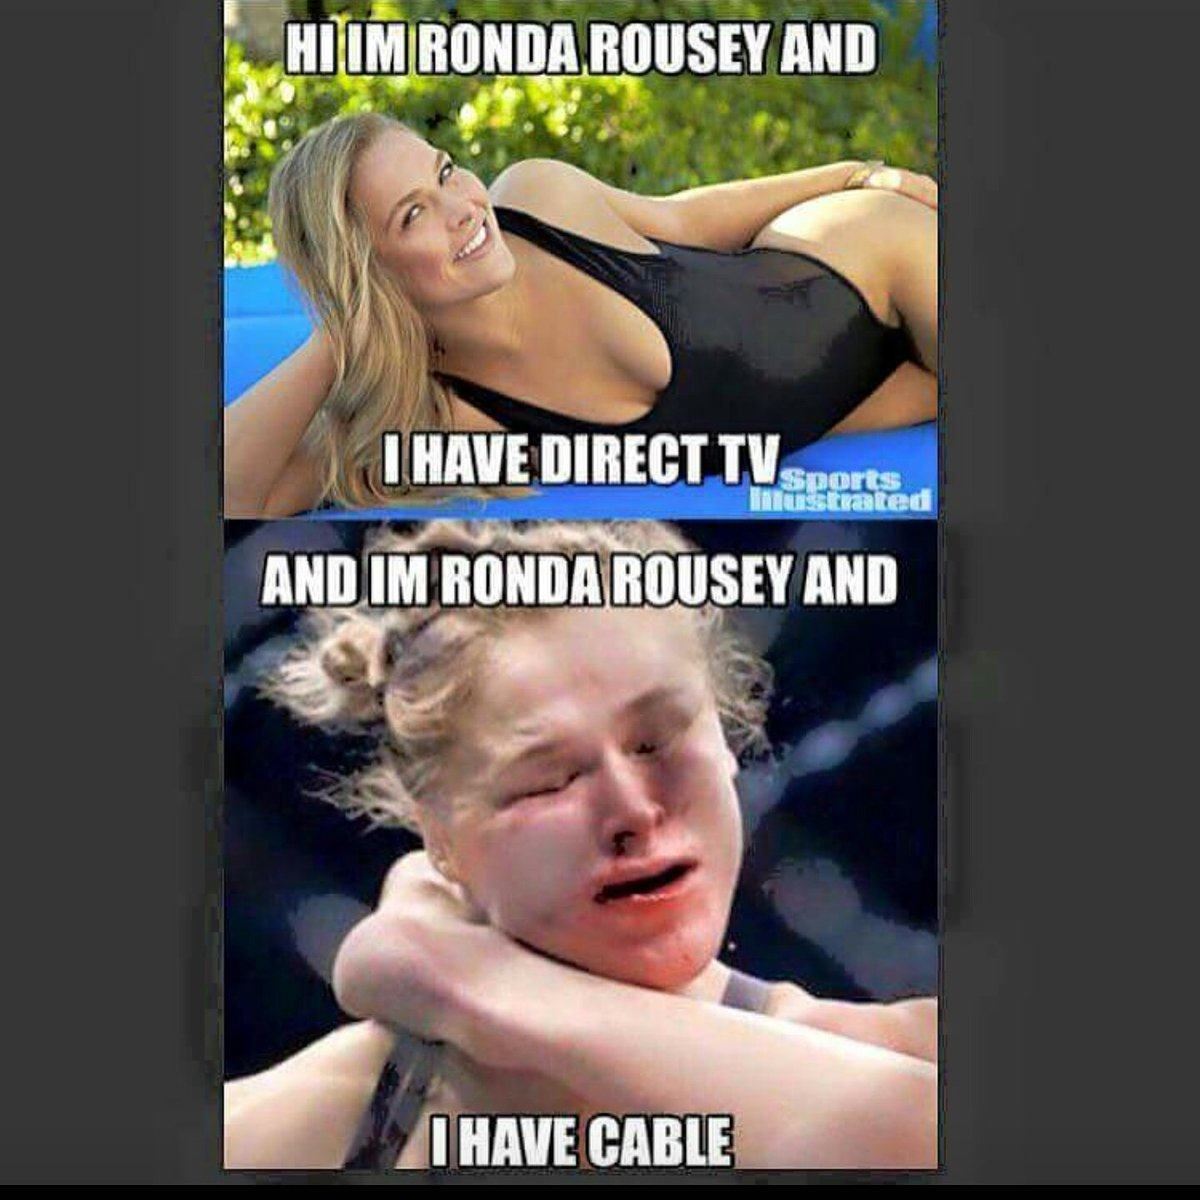 This is one of the best things I've seen.  #RondaRousey https://t.co/MRT1icMl1s